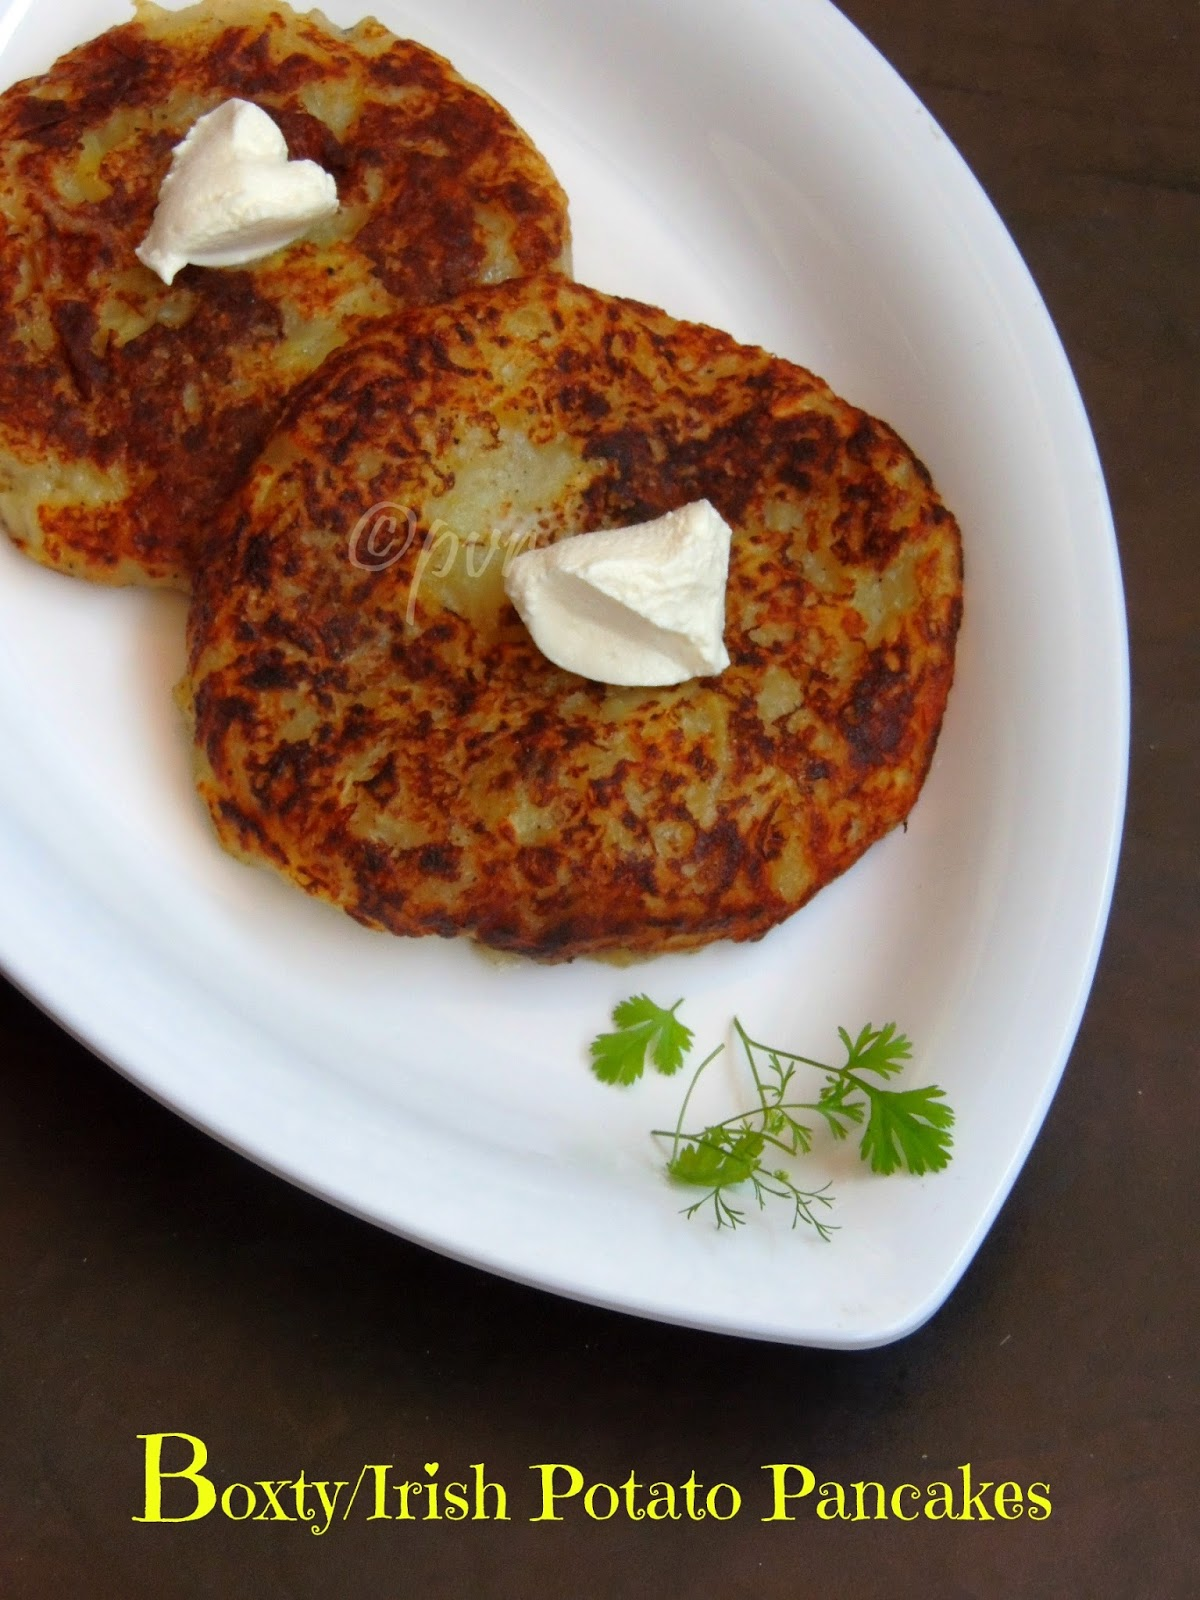 Boxty - Irish Potato Pancakes